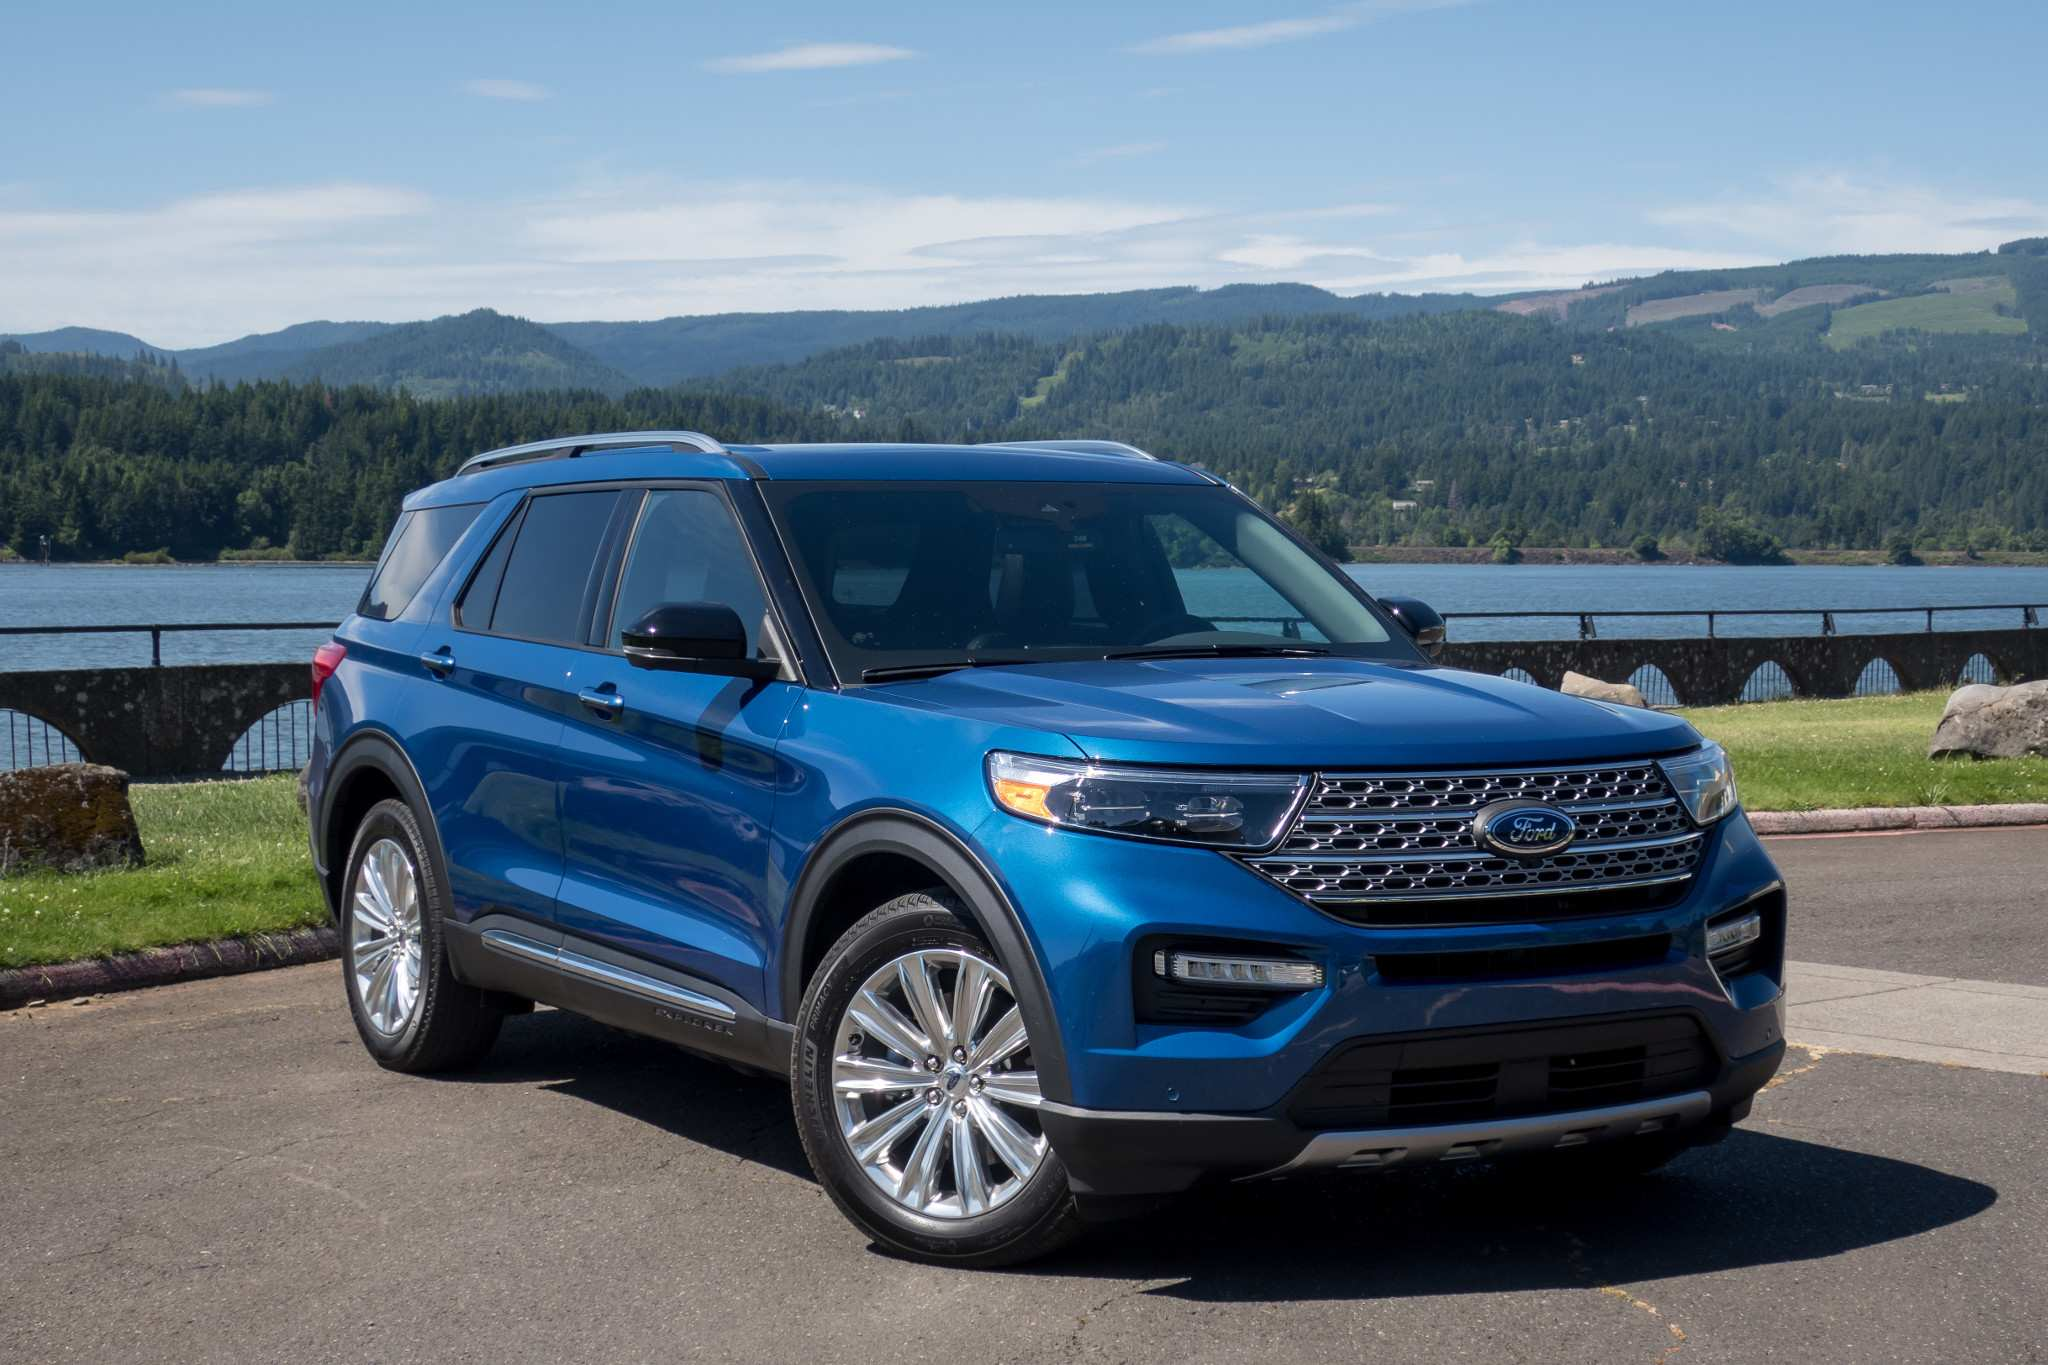 40 Best 2020 Ford Explorer Hybrid Mpg First Drive